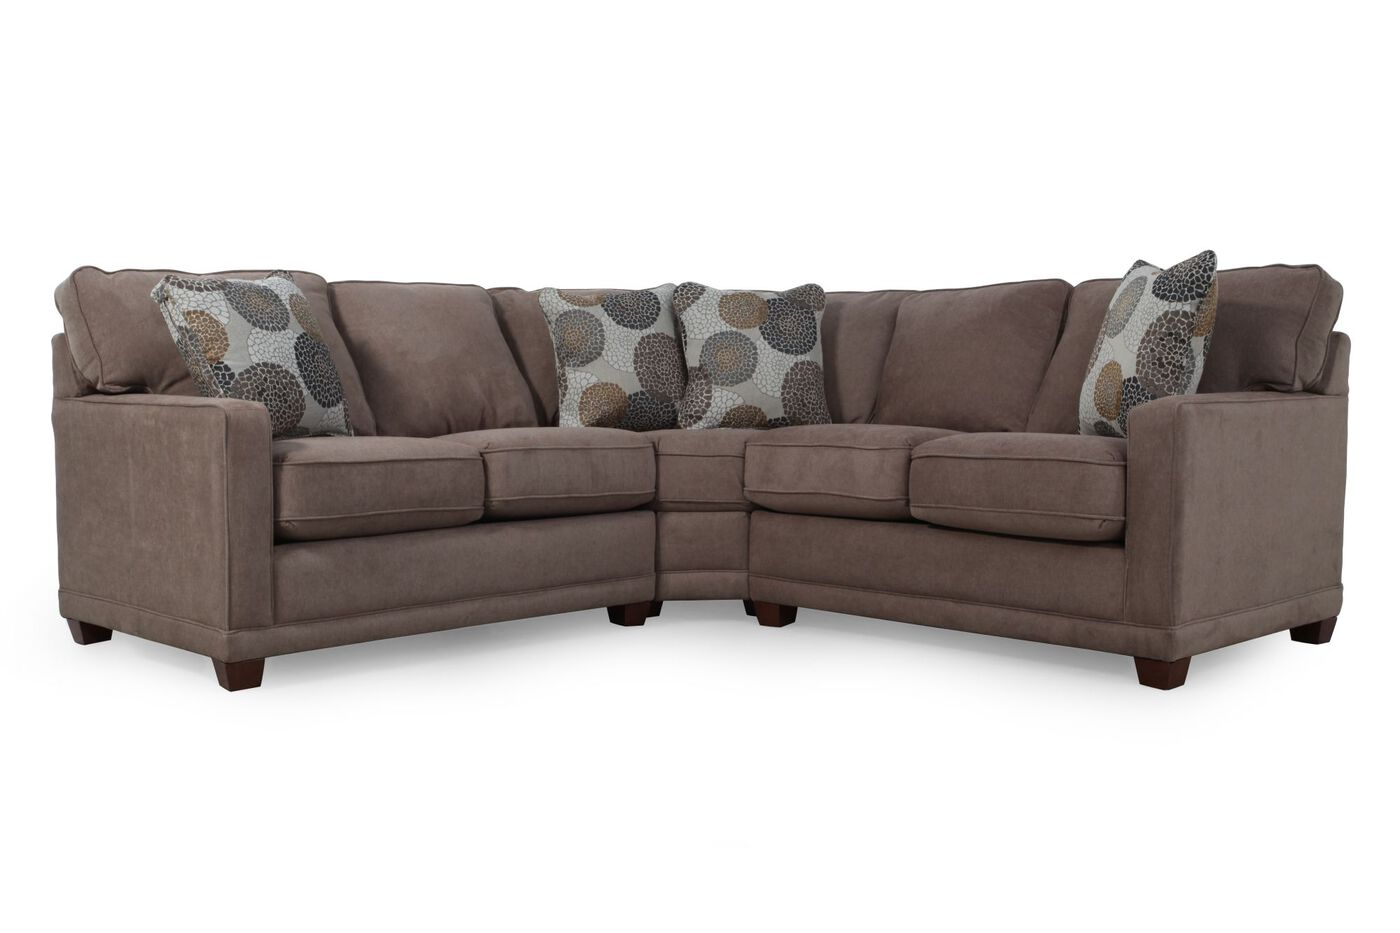 La z boy kennedy cashmere sectional mathis brothers for Sectional sofa mathis brothers